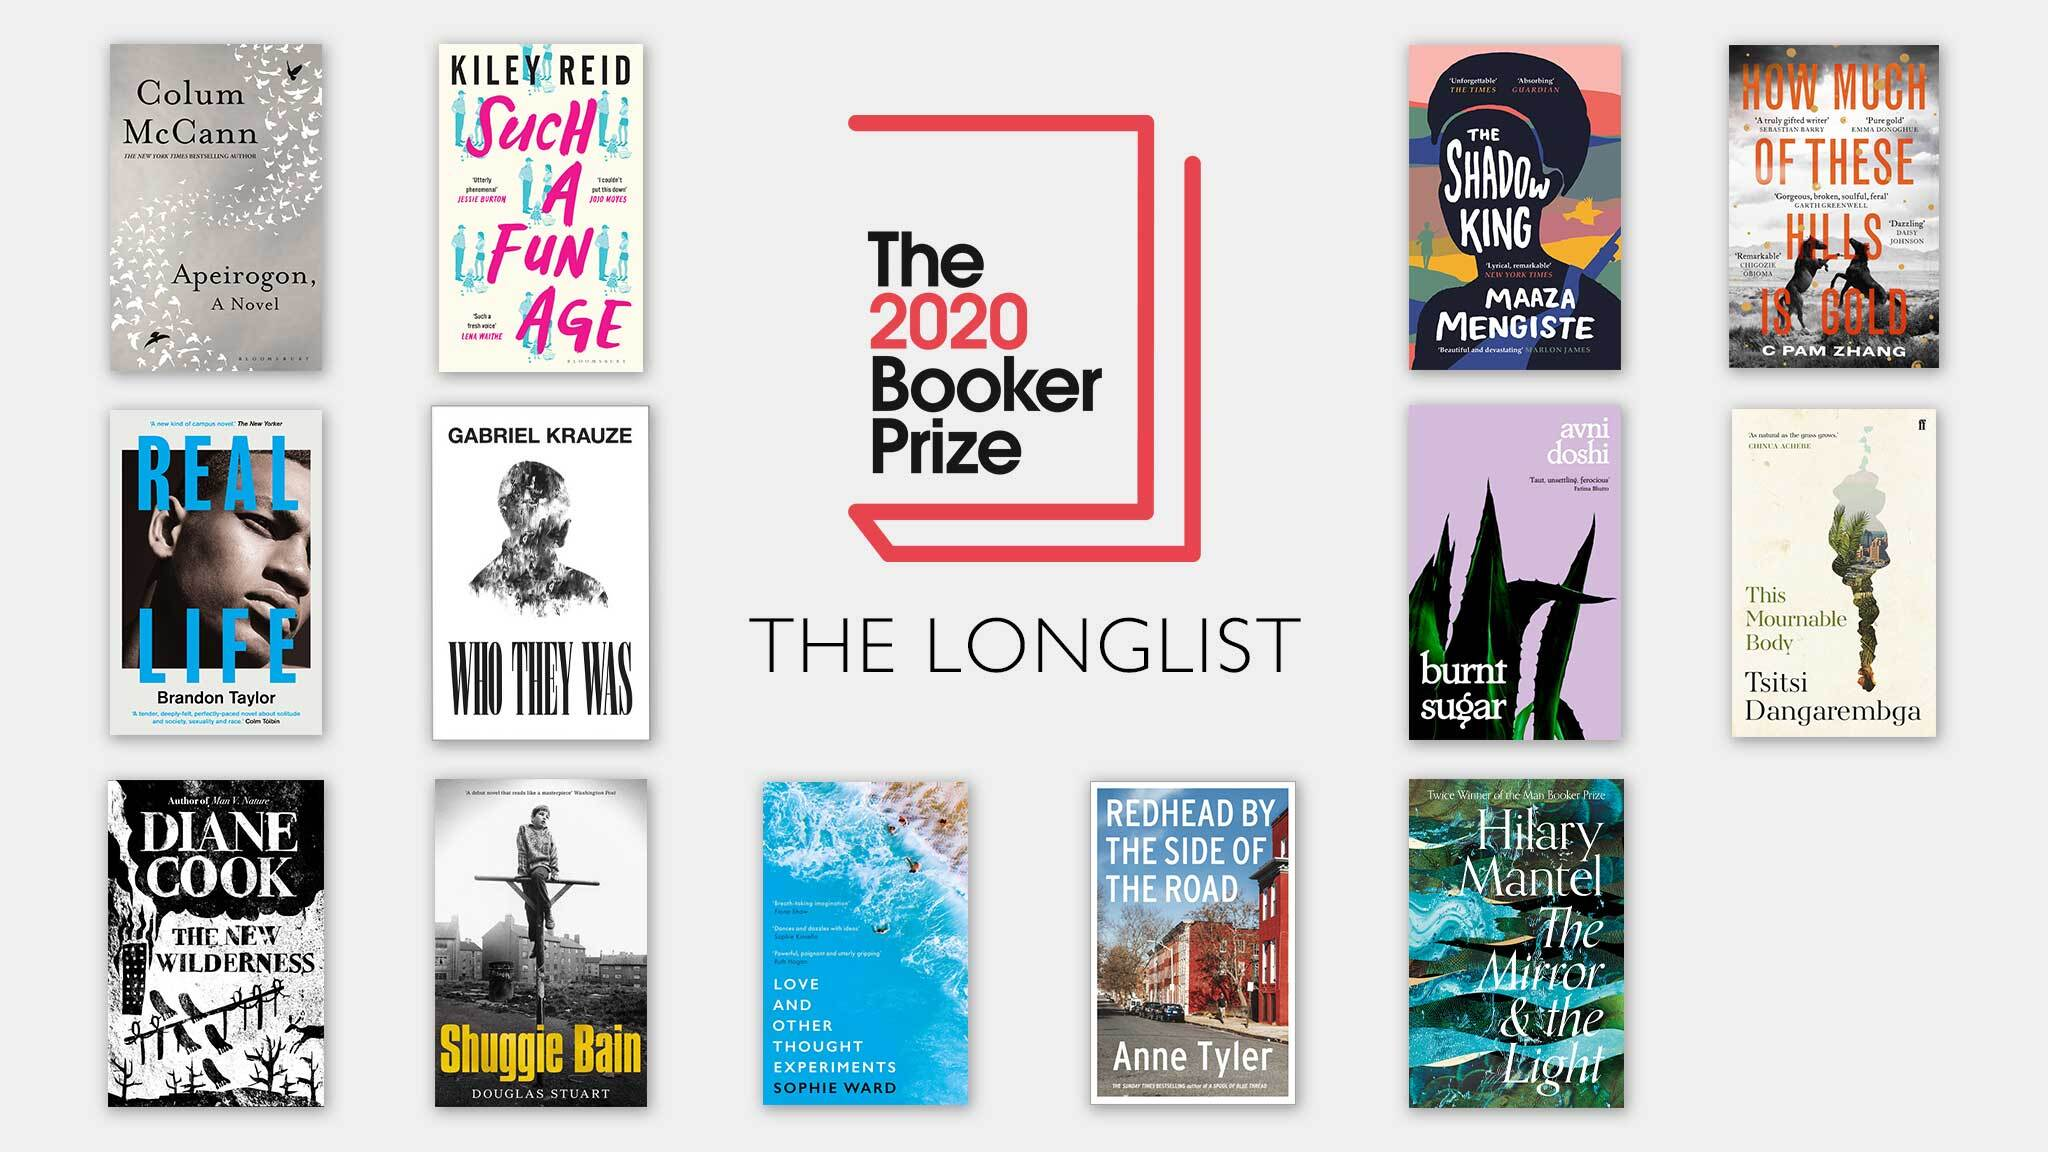 The Booker Prize 2020 - Longlist graphic